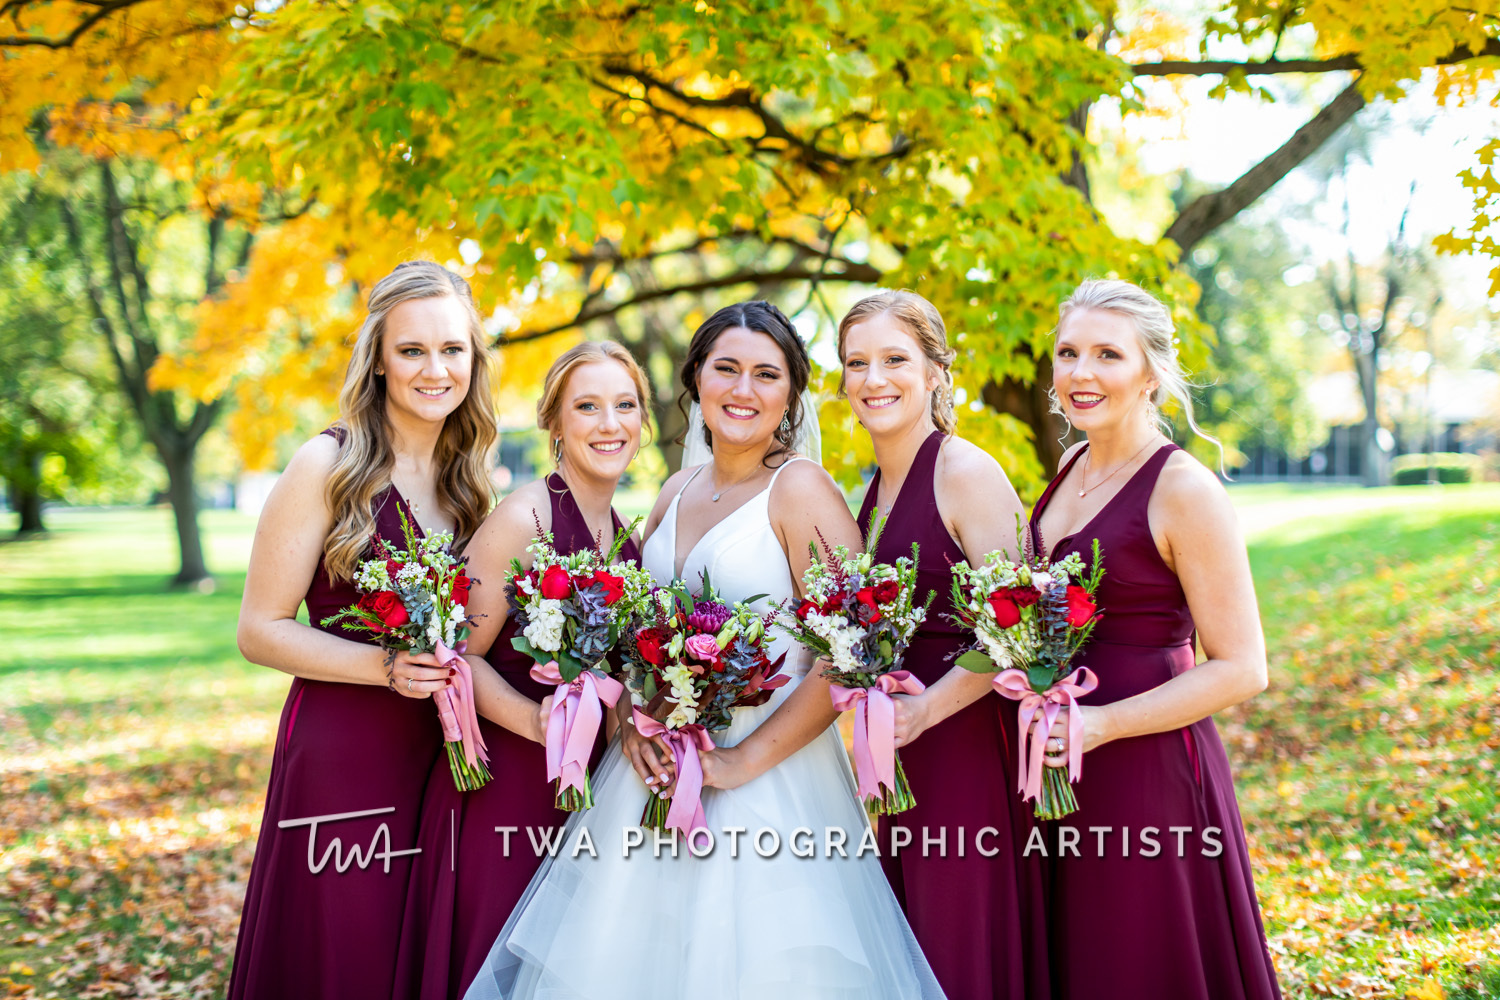 Chicago-Wedding-Photographer-TWA-Photographic-Artists-Avante-Banquets_Zickert_Quaas_MD_SG-0242